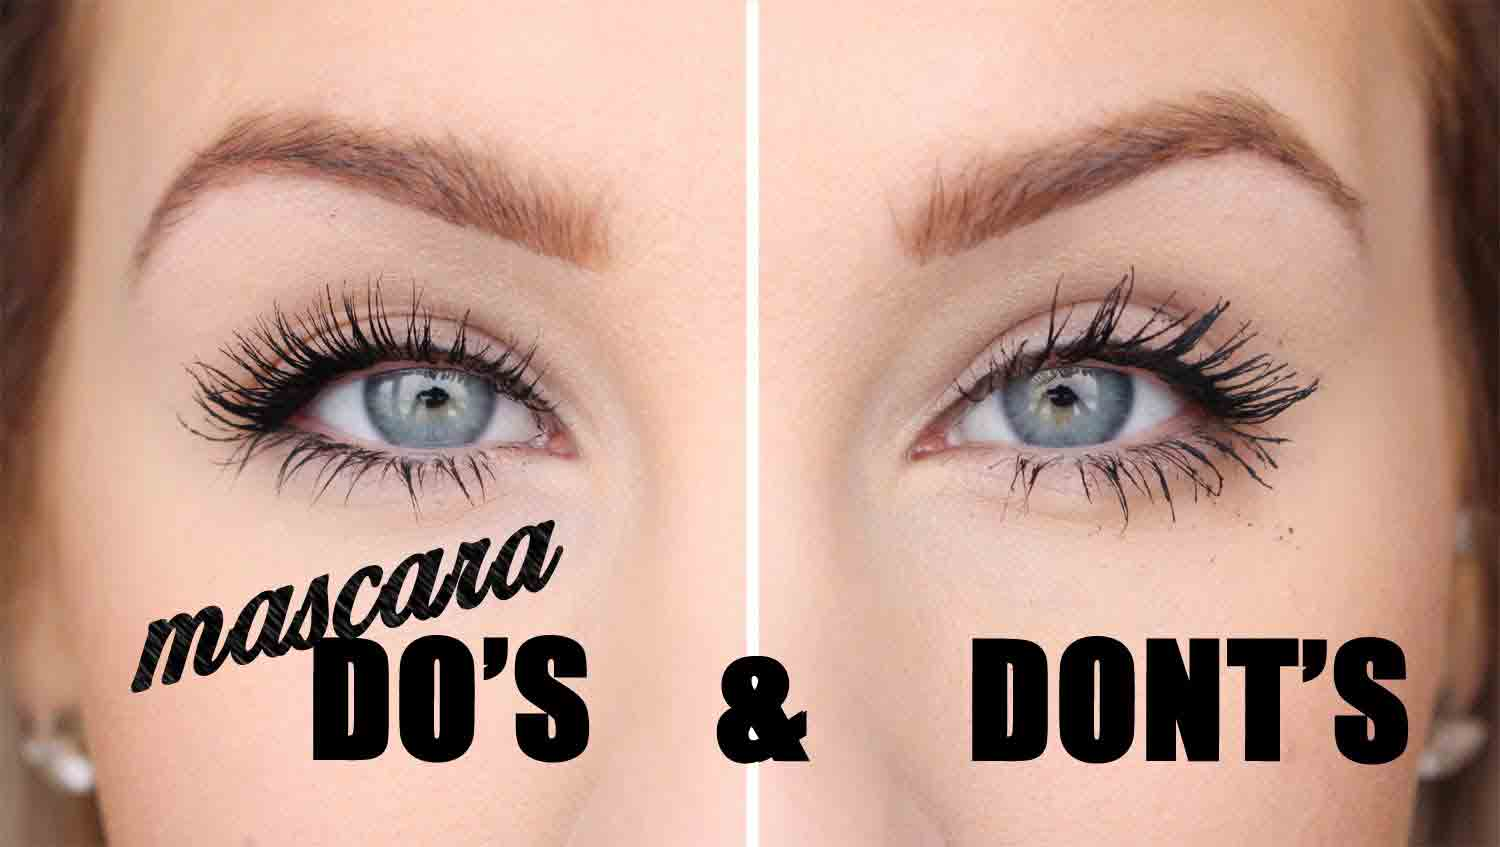 Clumpy eyes party makeup mistakes to avoid in Pakistan